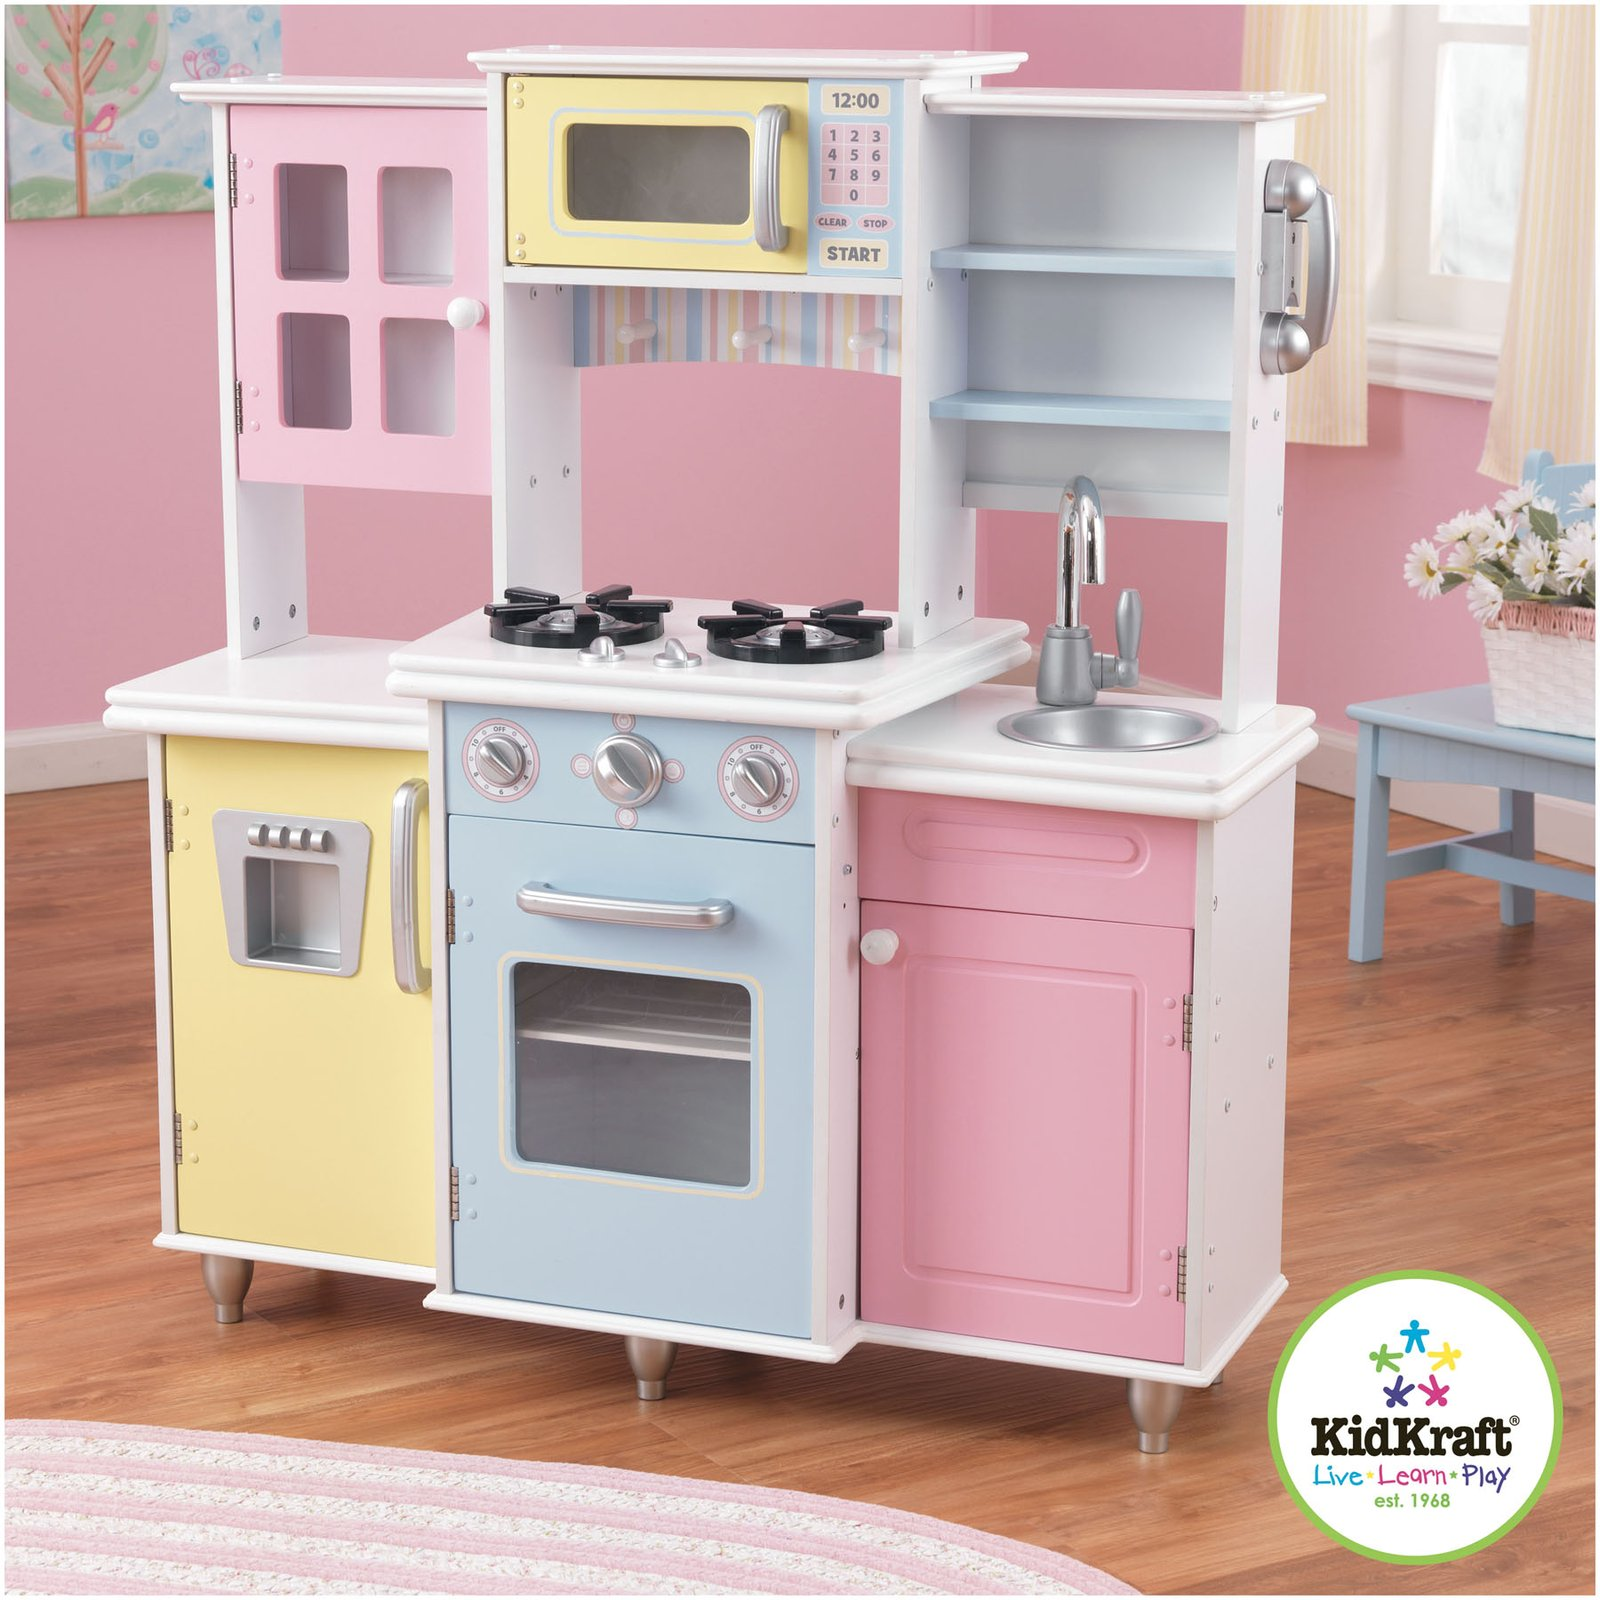 kidkraft kitchen pink kitchen ideas On kitchen set for 8 year old